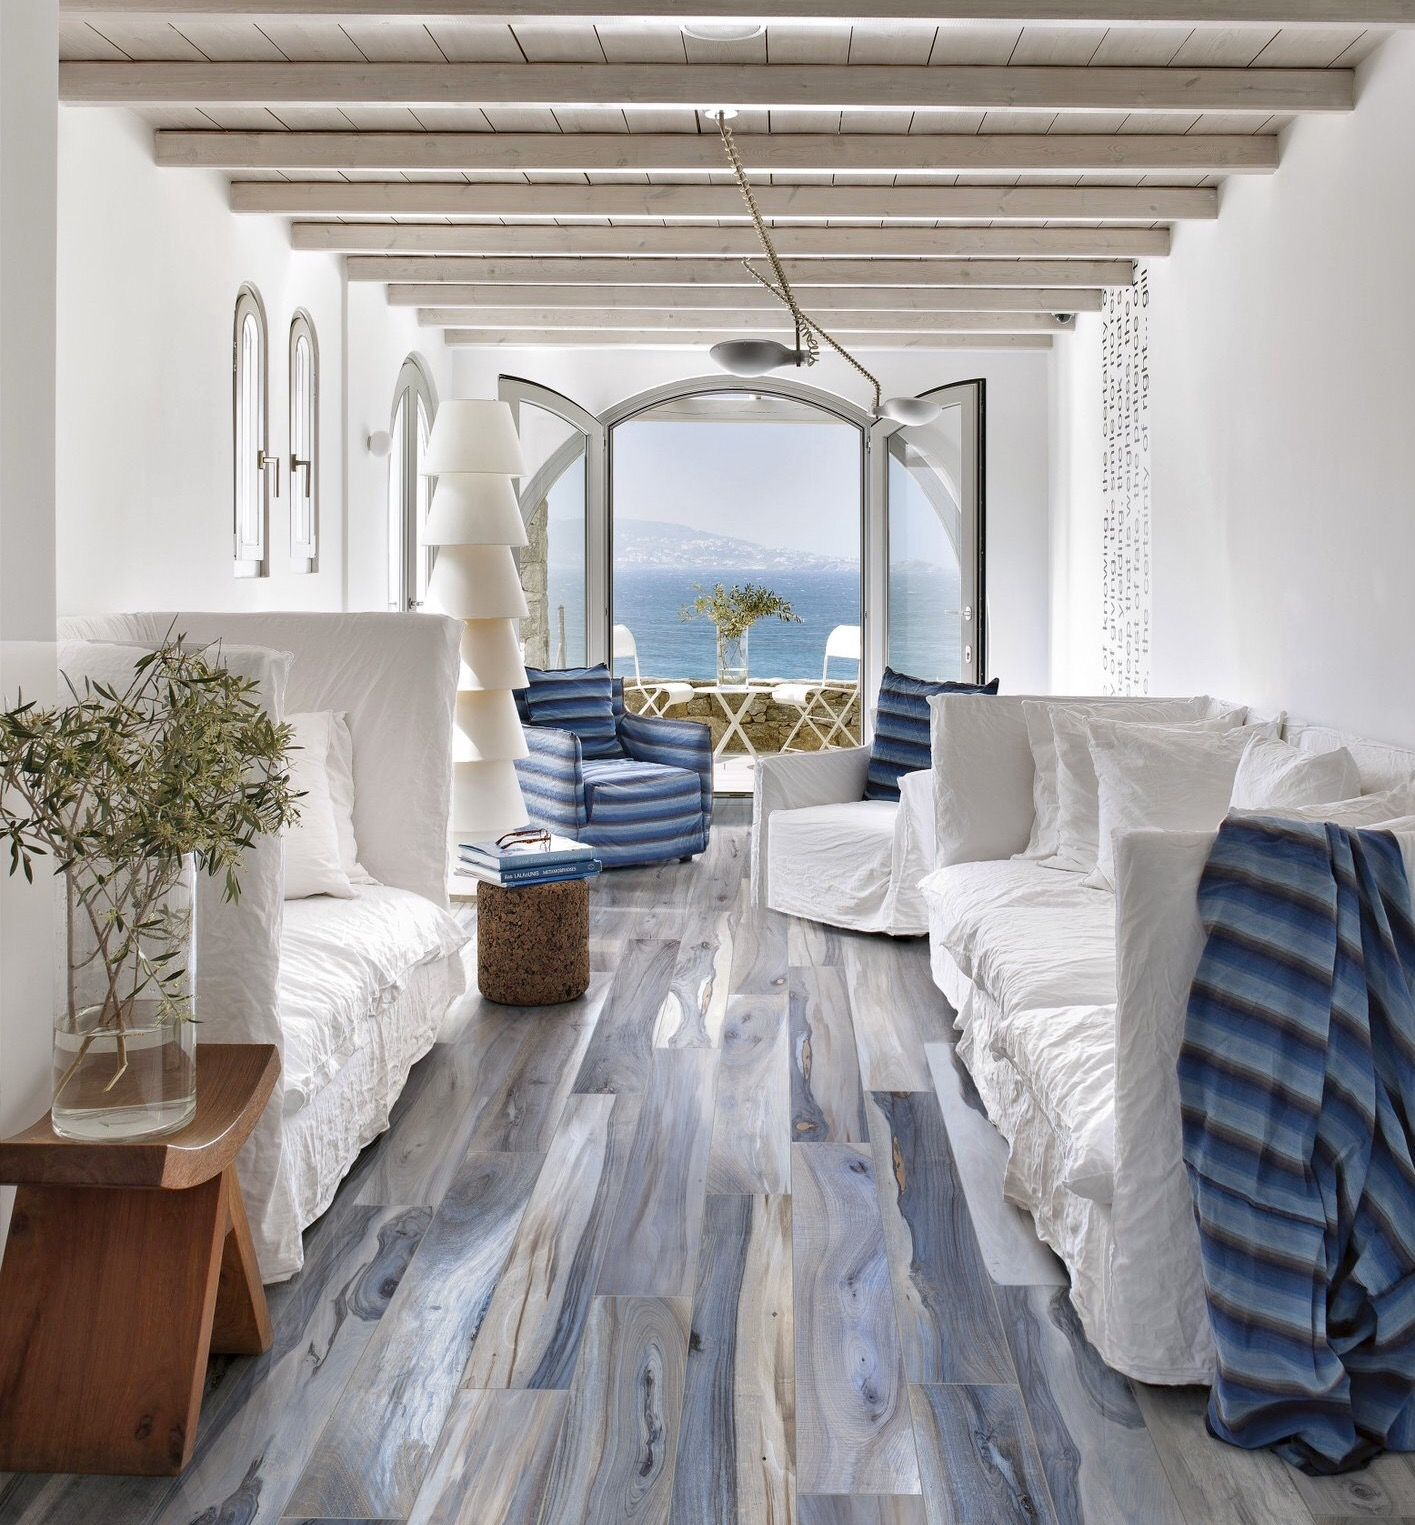 Living For The Blue In The Woodgrain Of This Flooring Home Wood Look Tile Home Decor